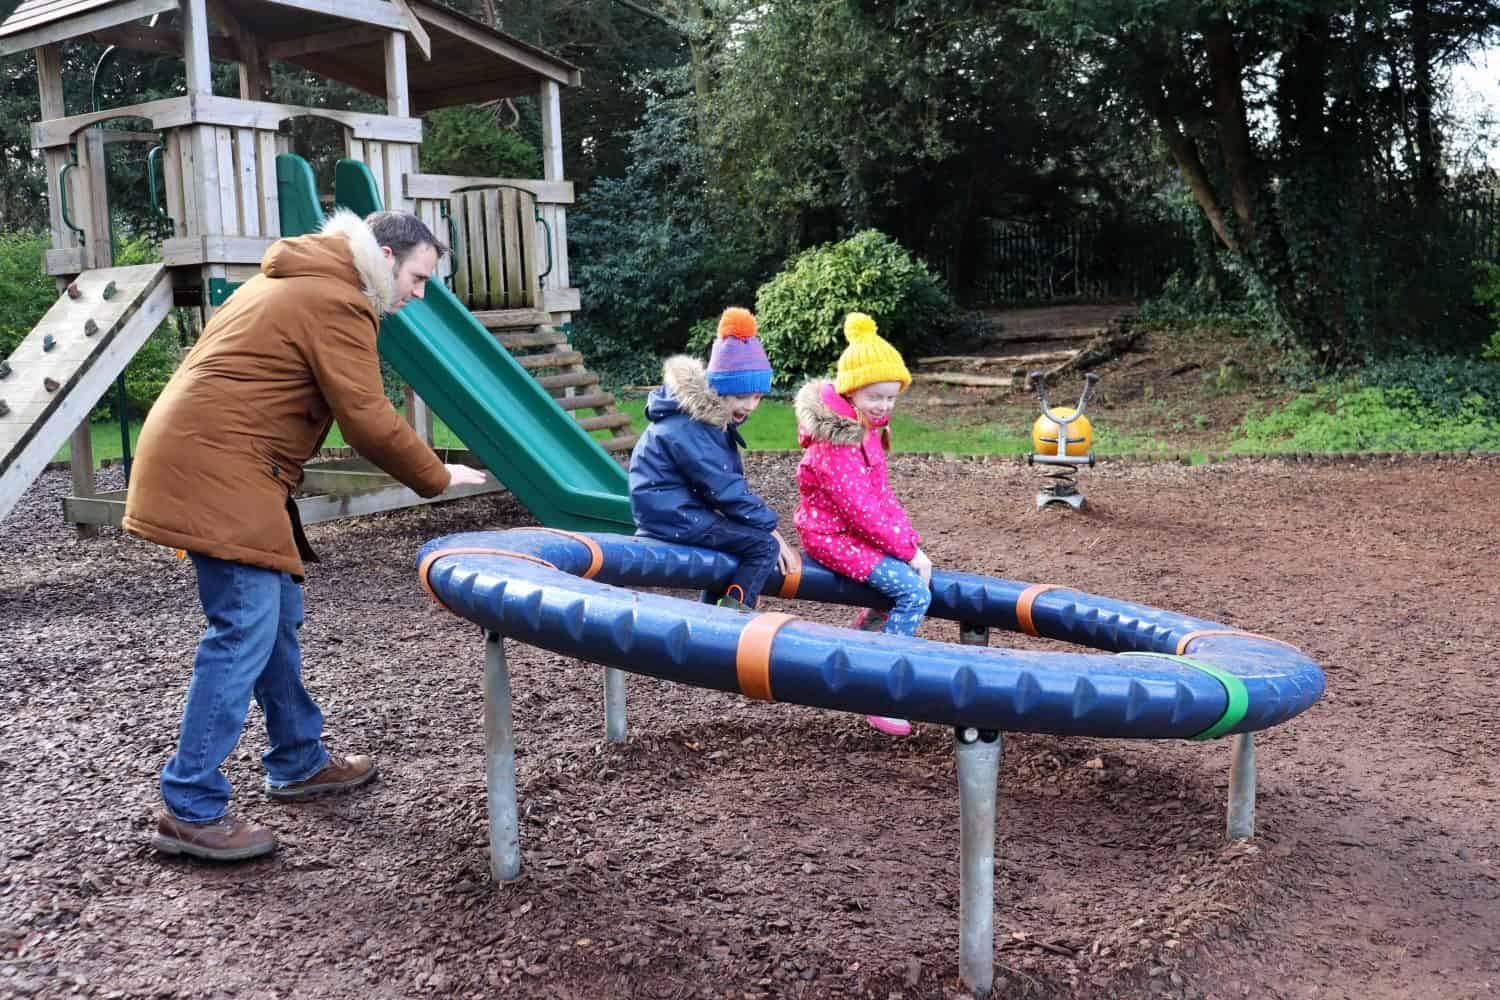 The playground at Bletchley Park